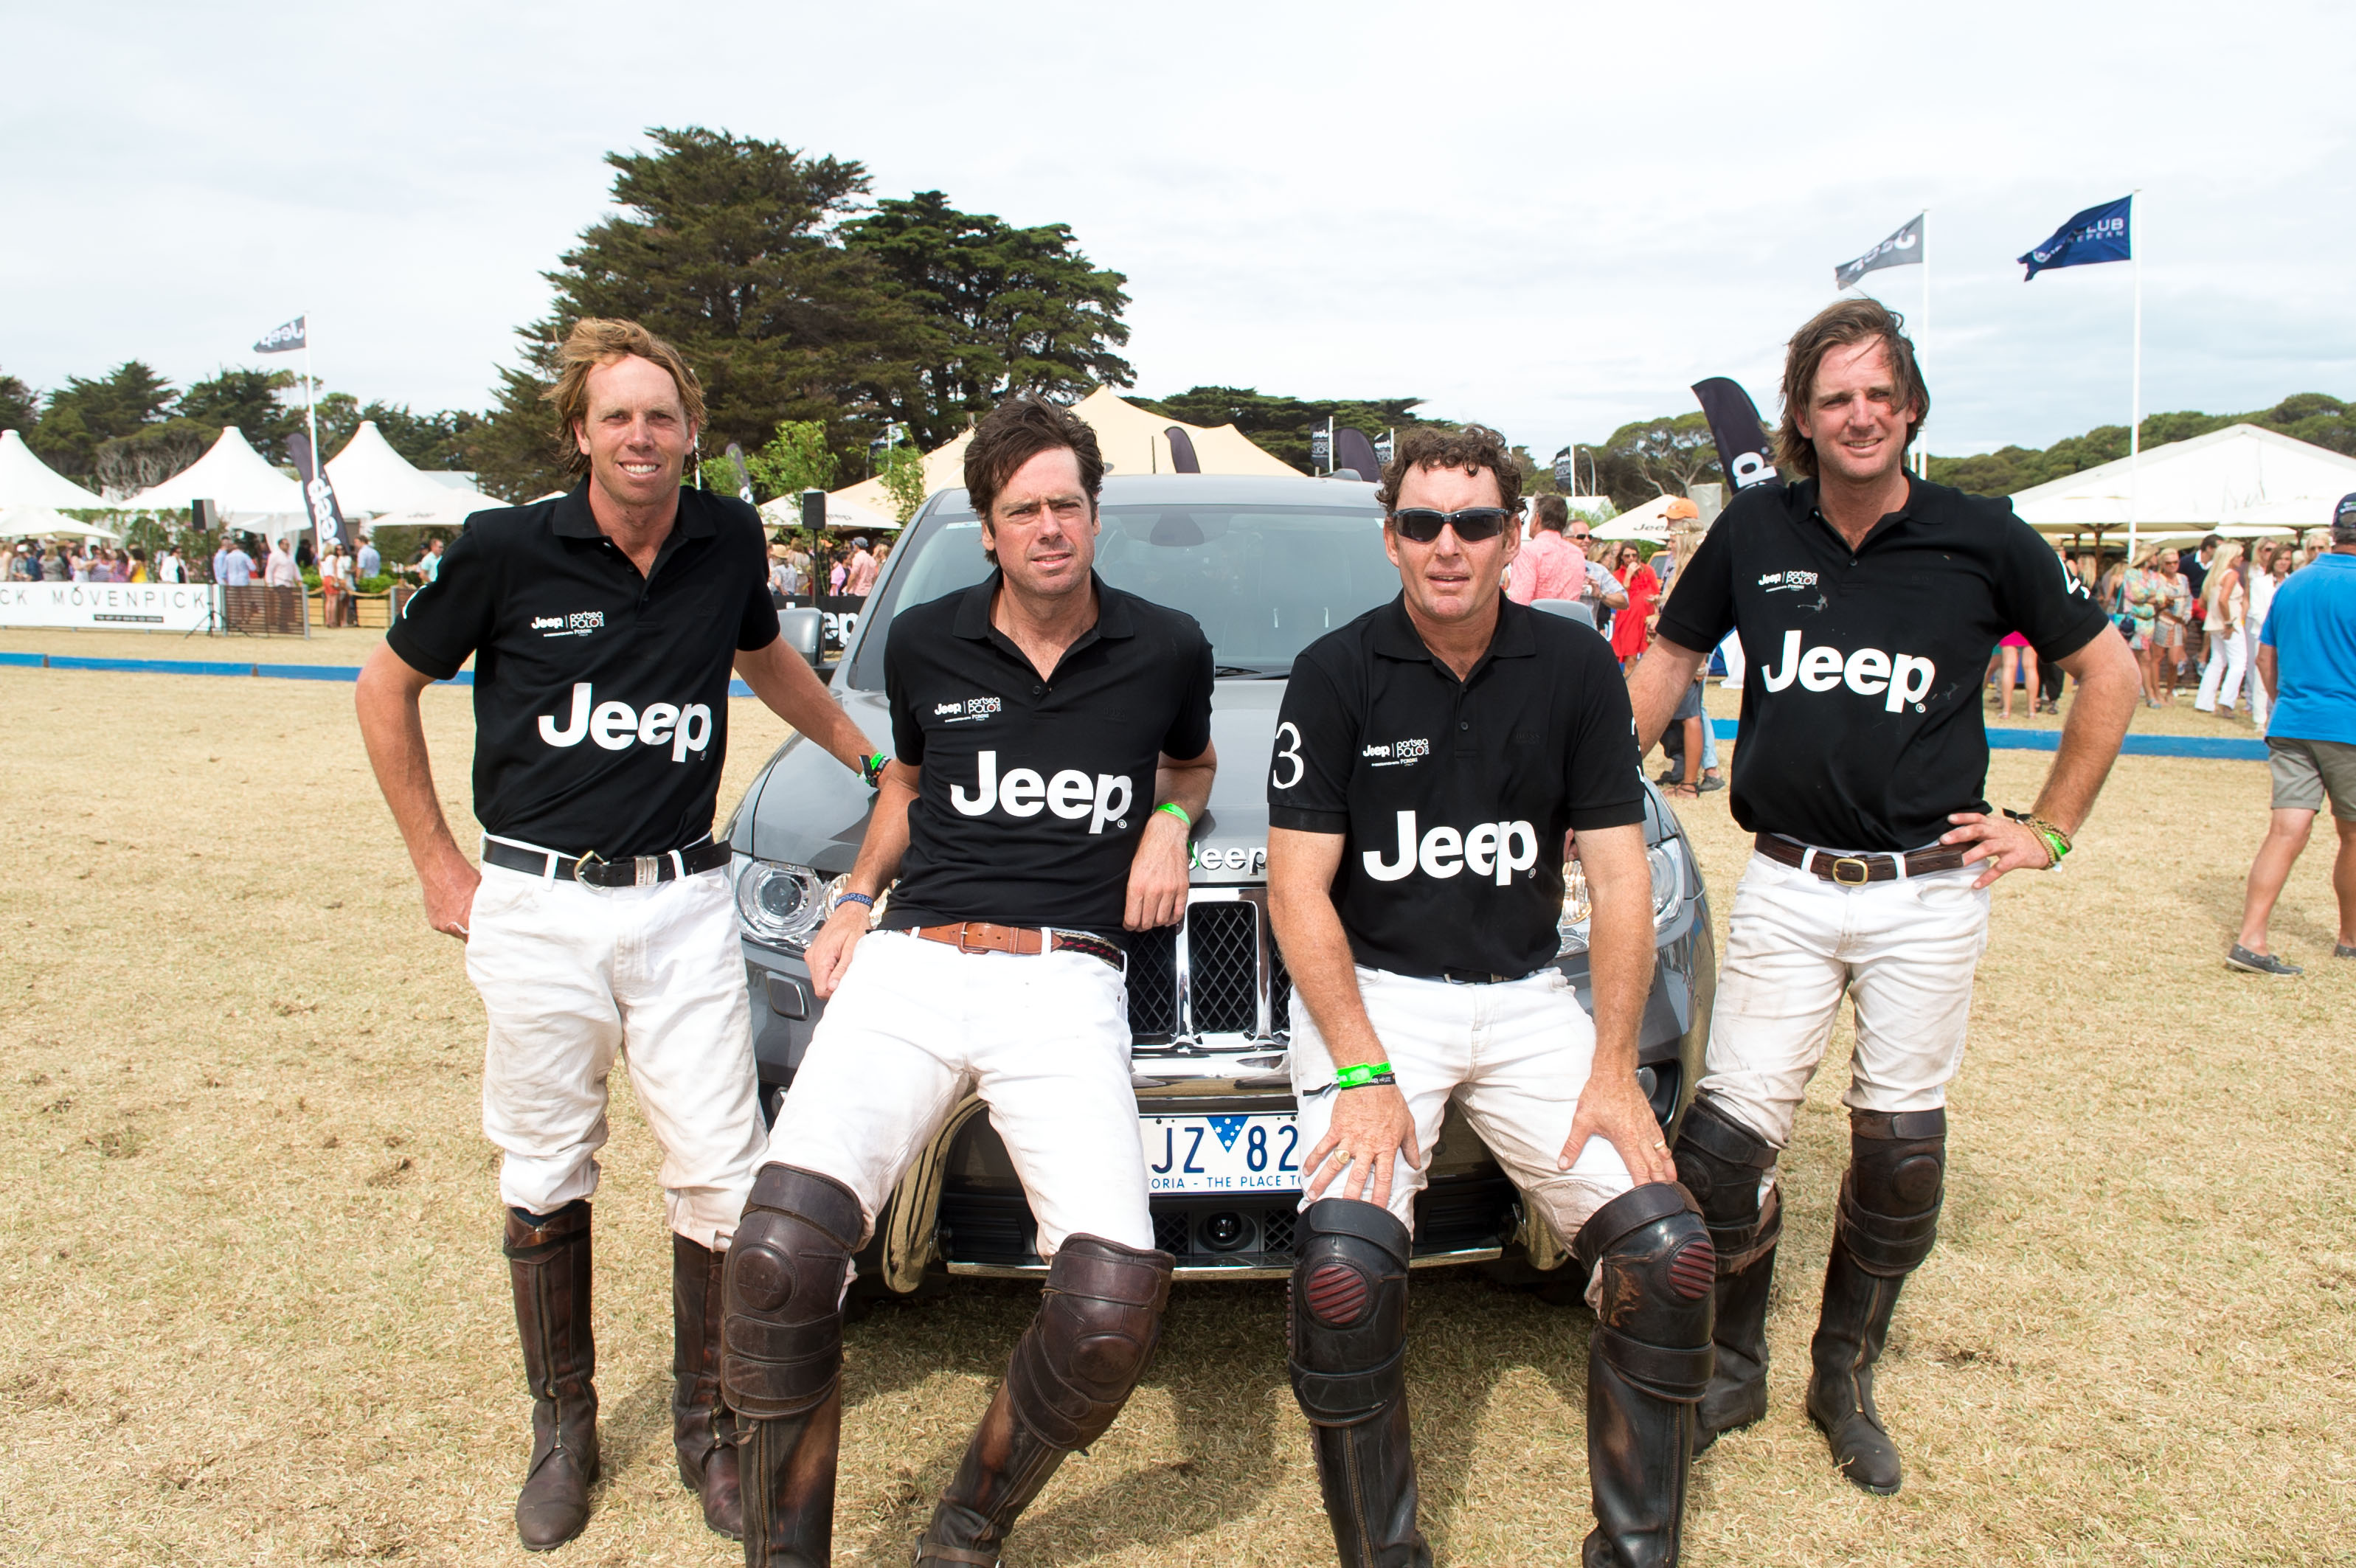 2014 JEEP PORTSEA POLO: HOW NOT TO EMBARRASS YOURSELF PT 1 - THE RULES OF THE GAME